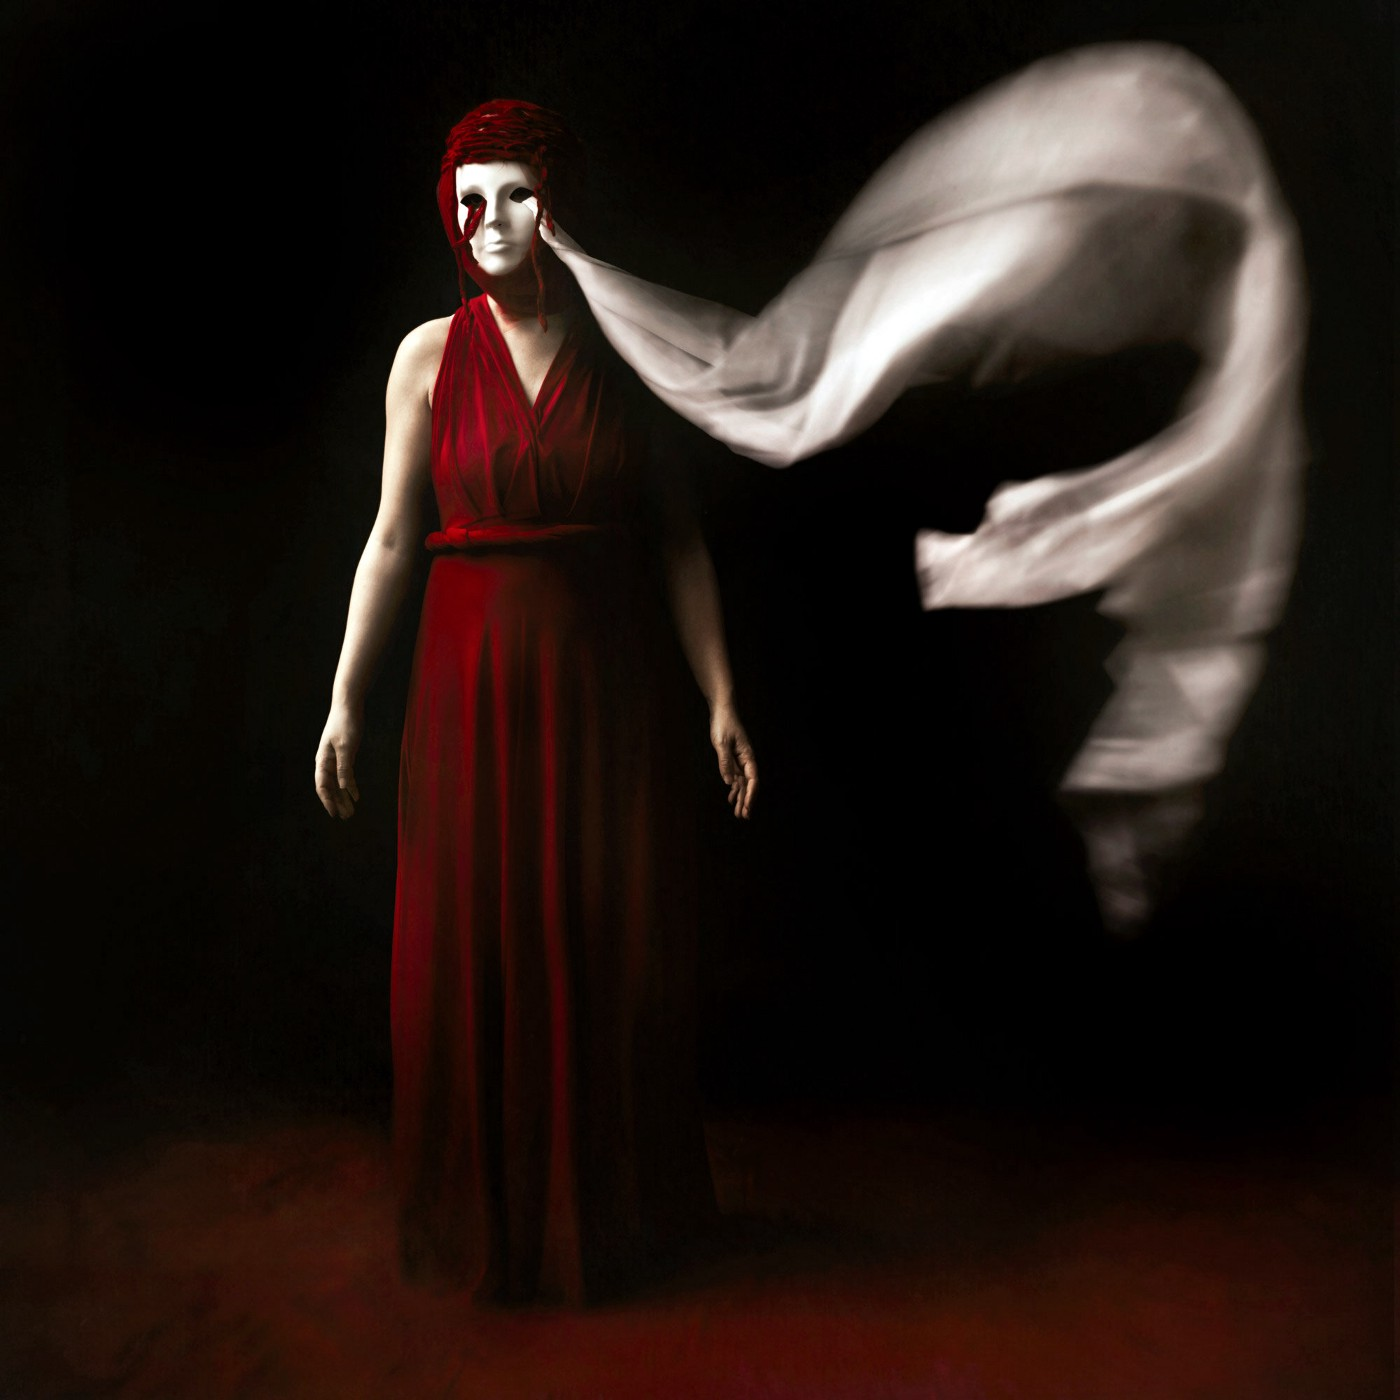 A woman stands in a dark room in a red dress and red head covering wears a mask with white fabric billowing out of the eye hole.